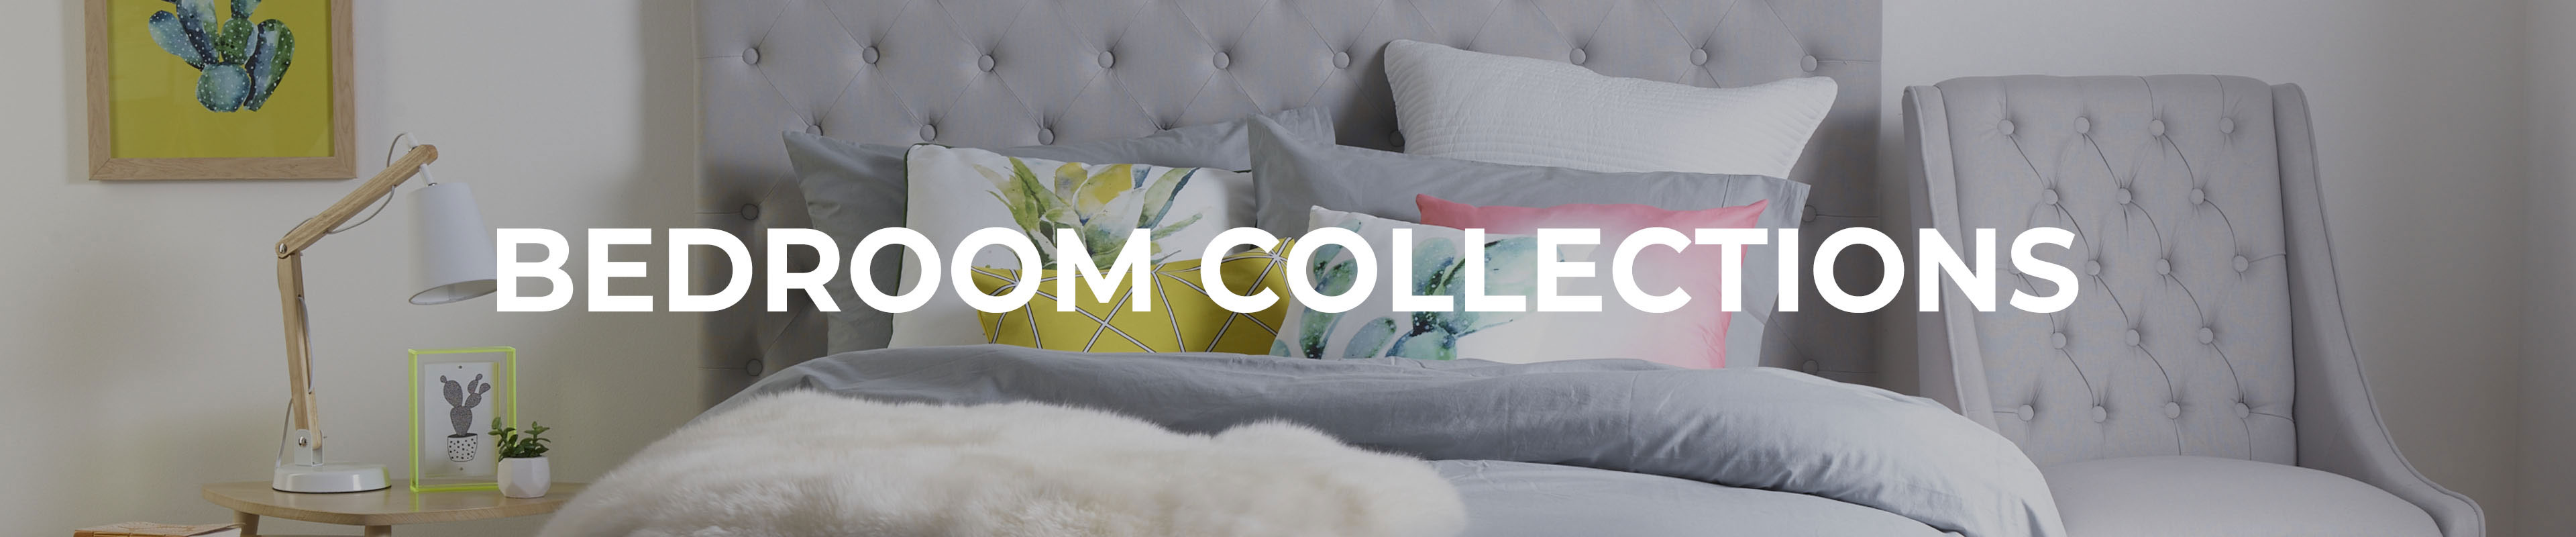 Shop Our Bedroom Collections